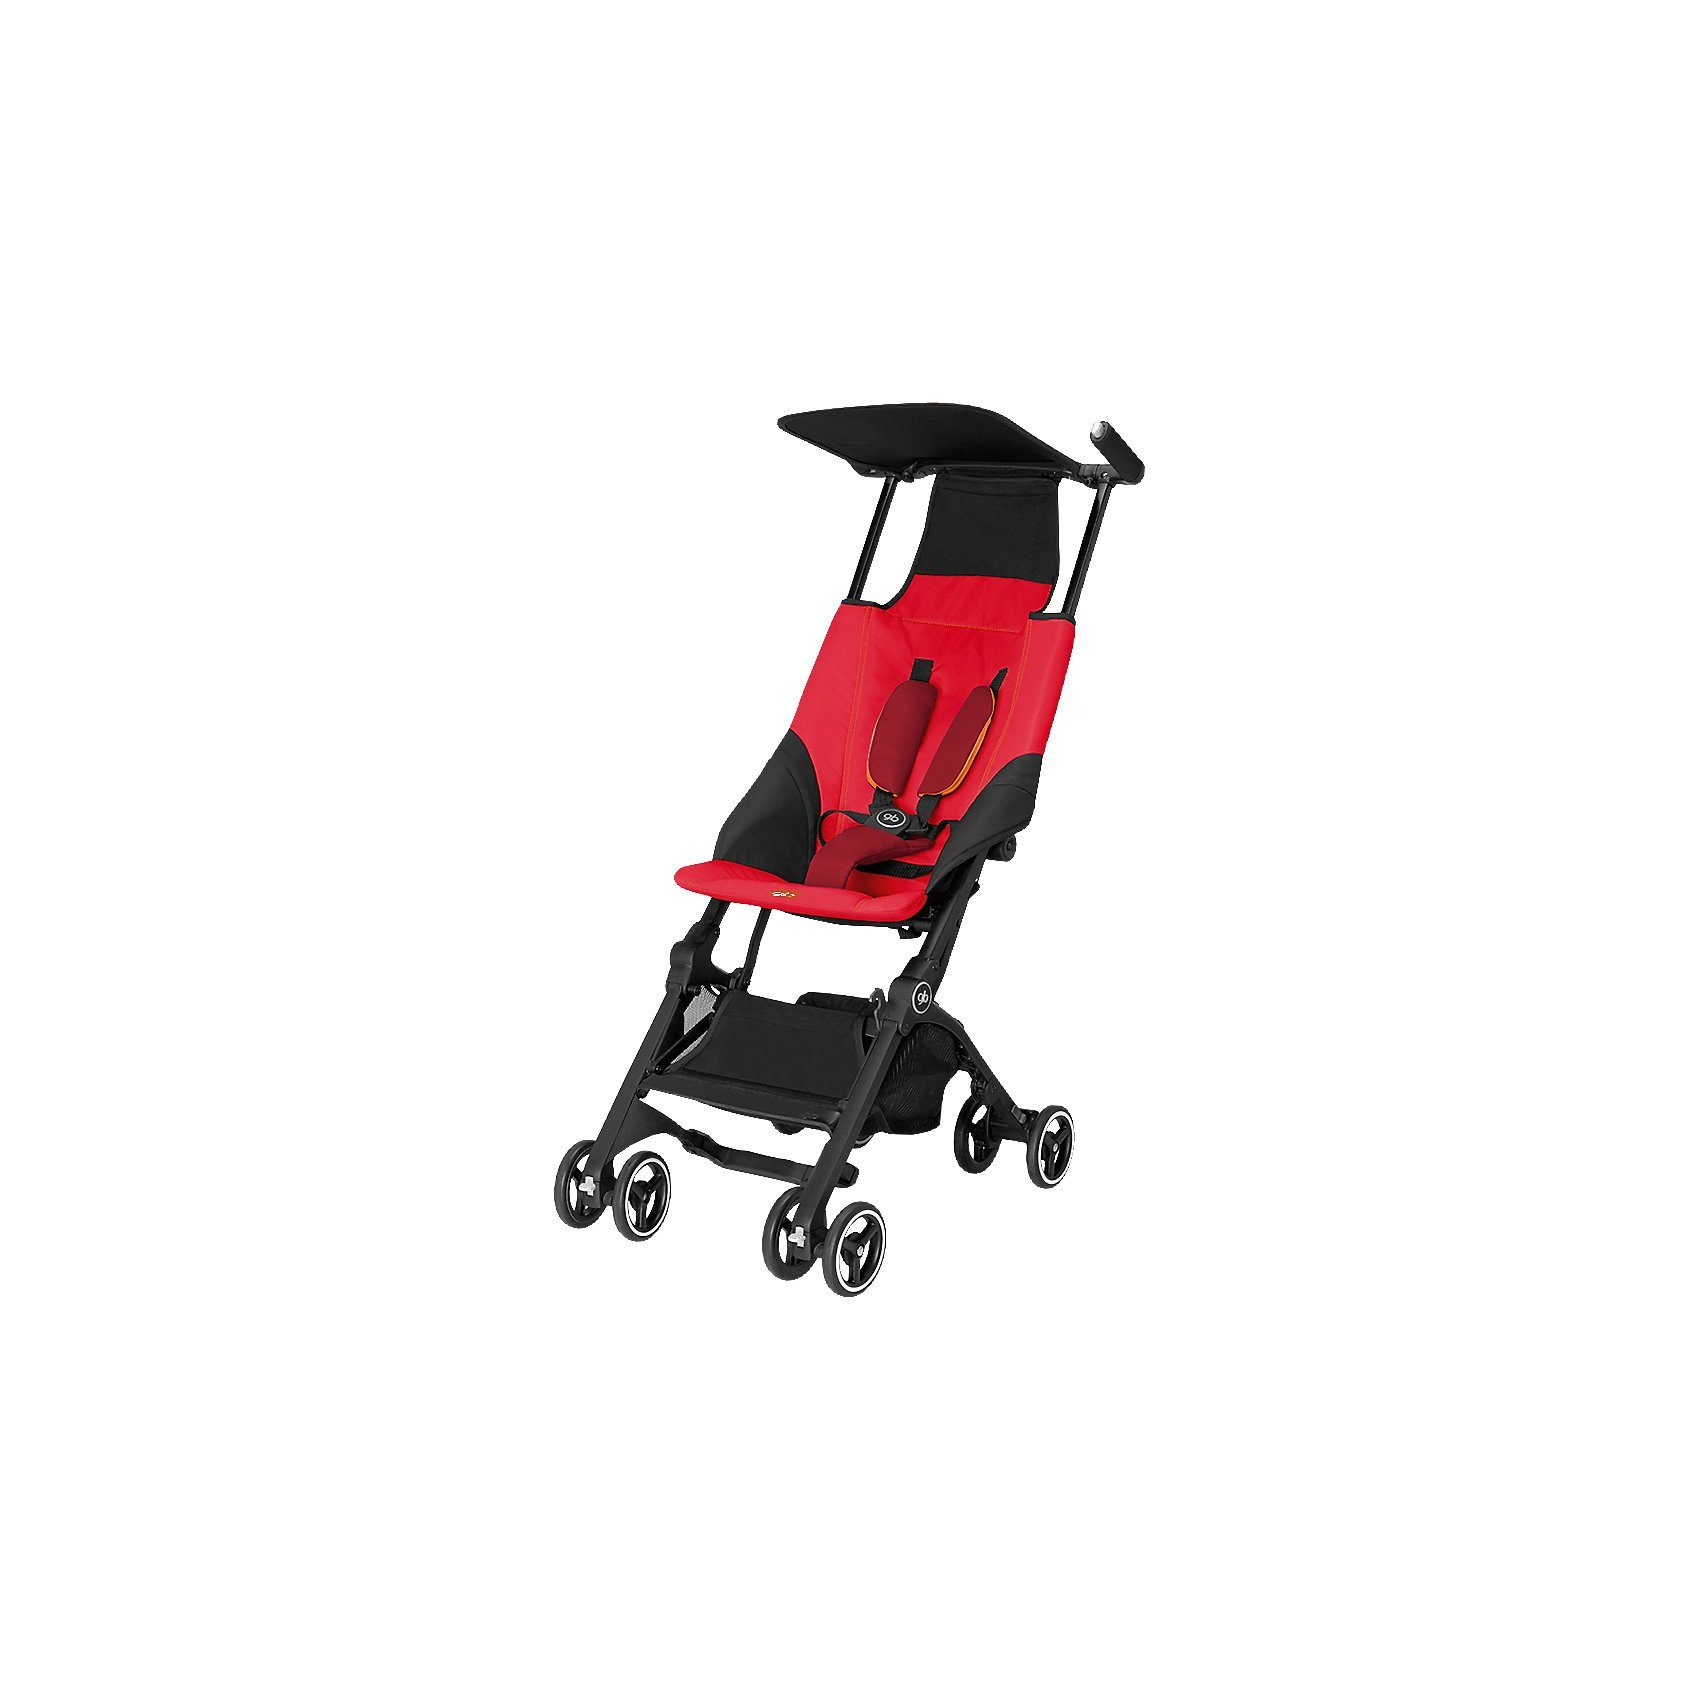 Goodbaby Buggy POCKIT, Dragonfire Red, 2017